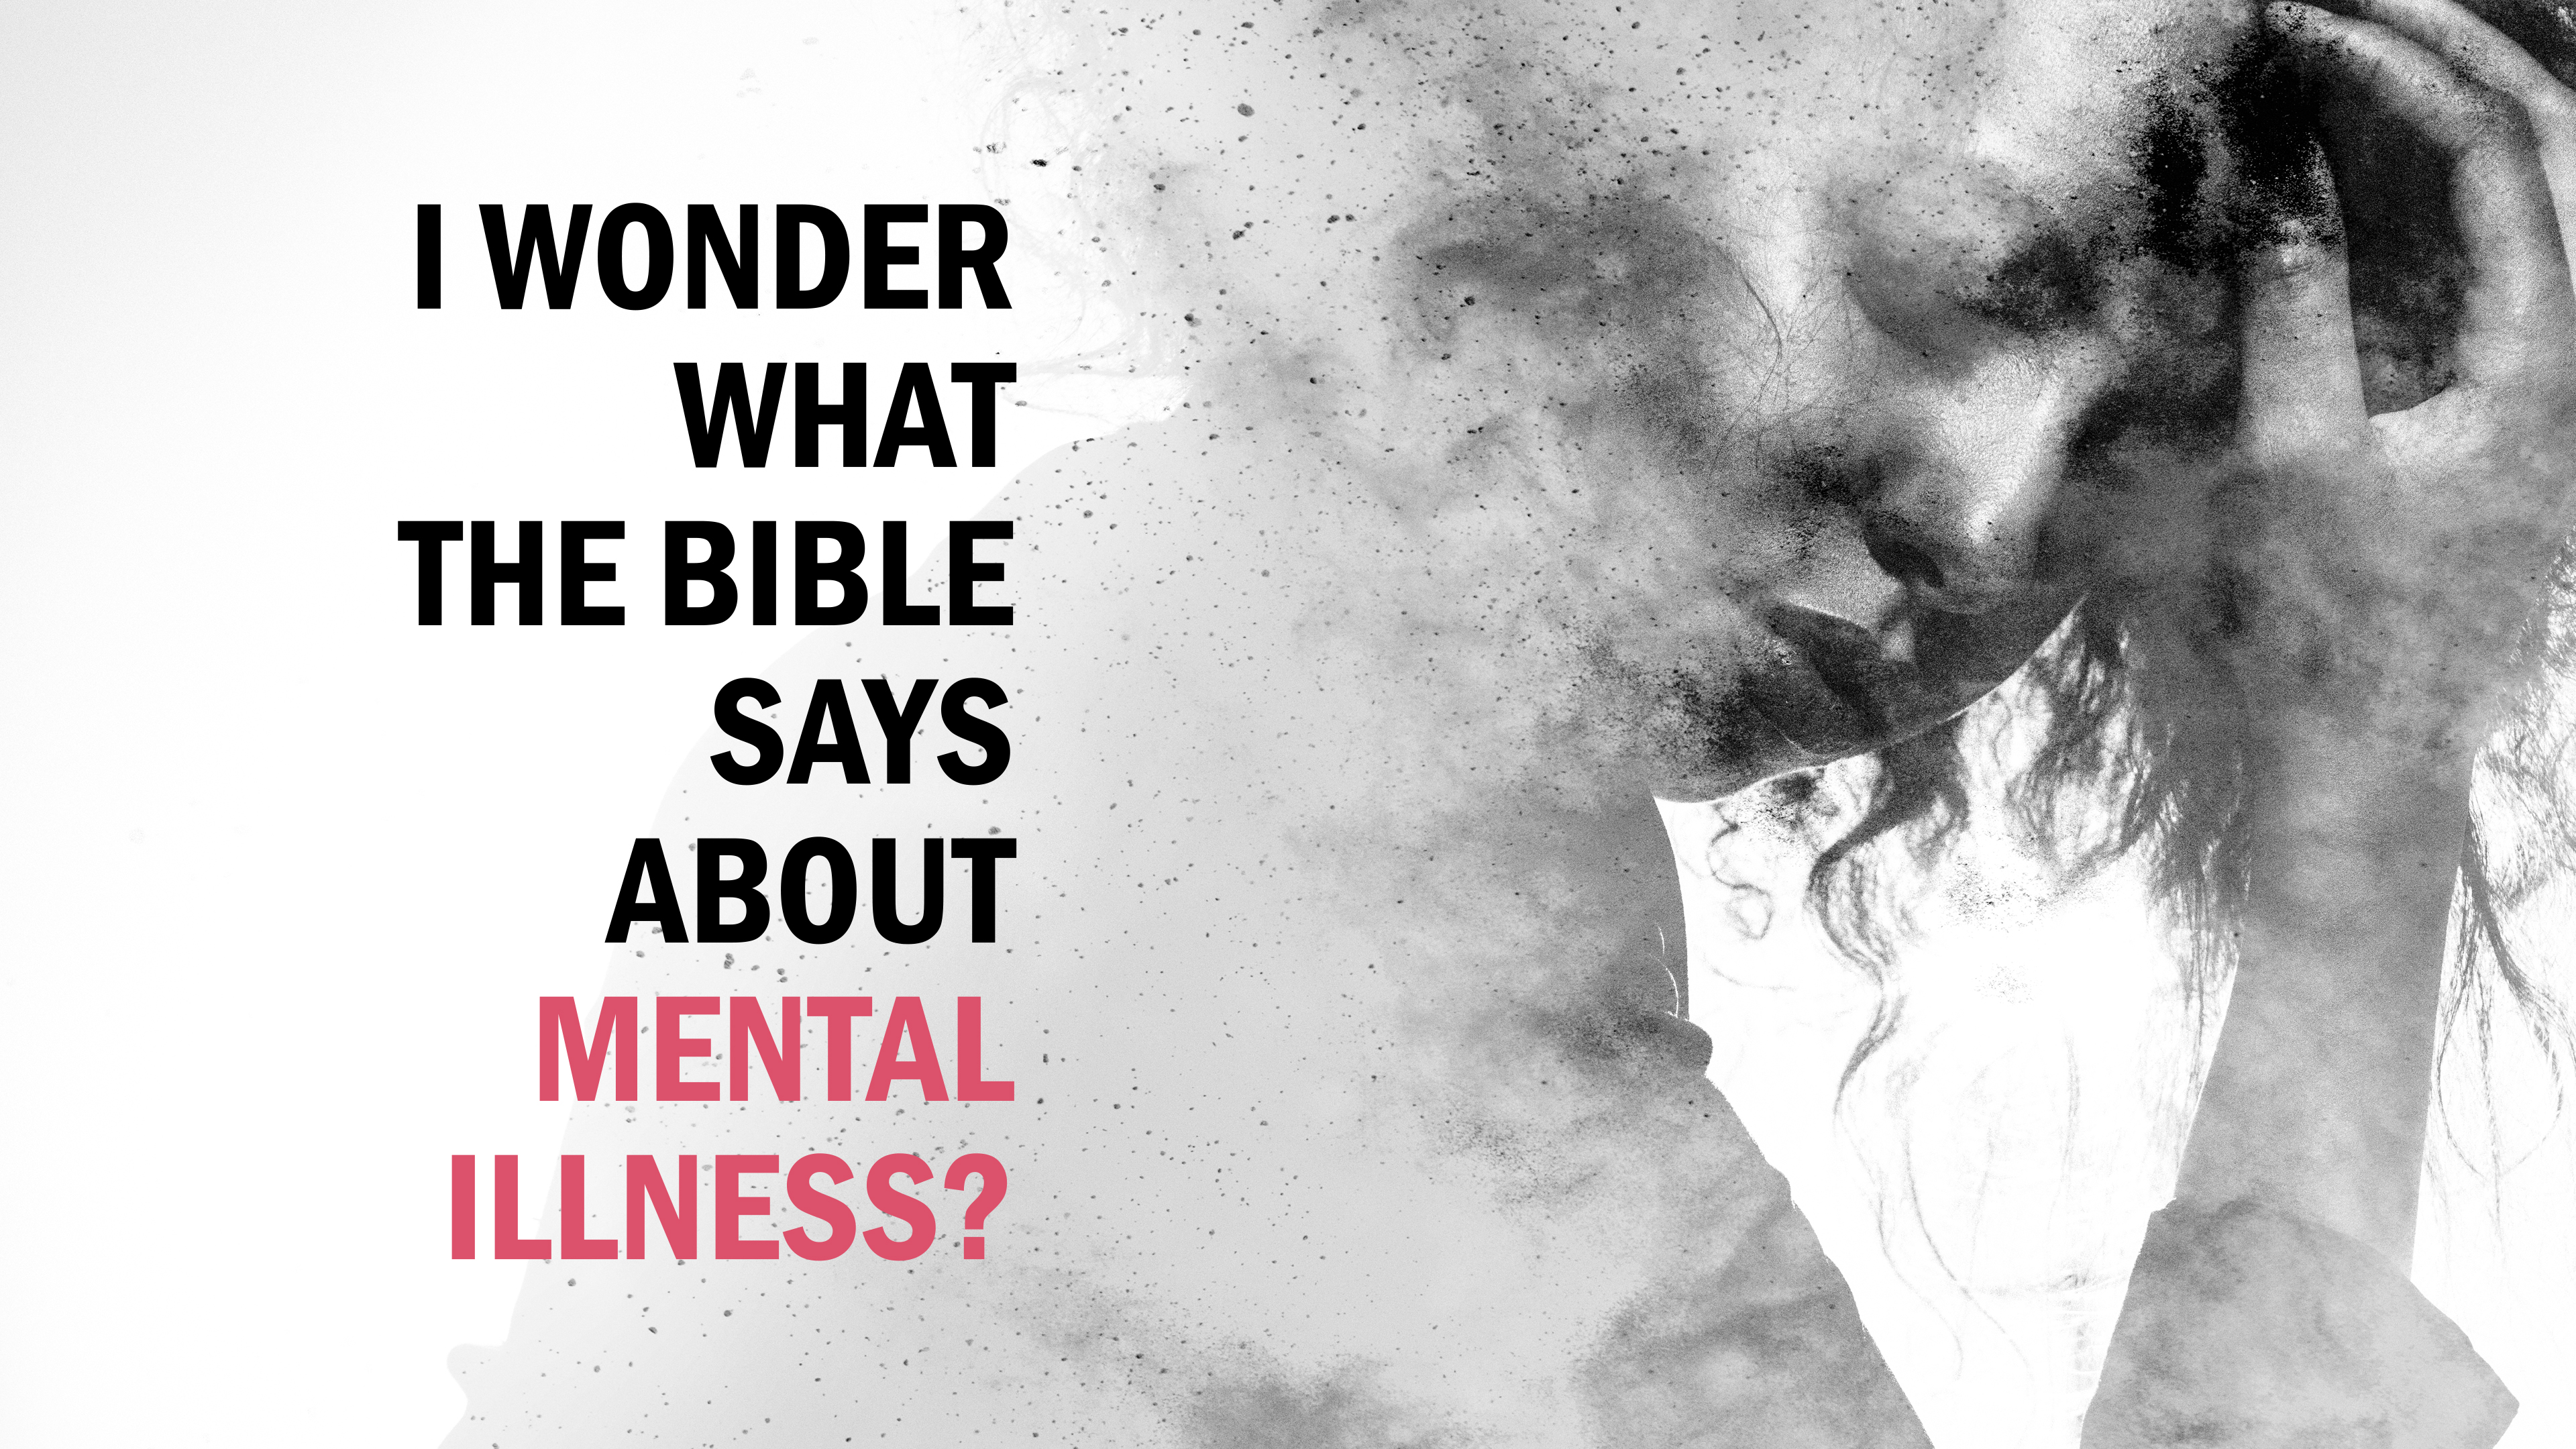 I Wonder What the Bible Says About Mental Illness